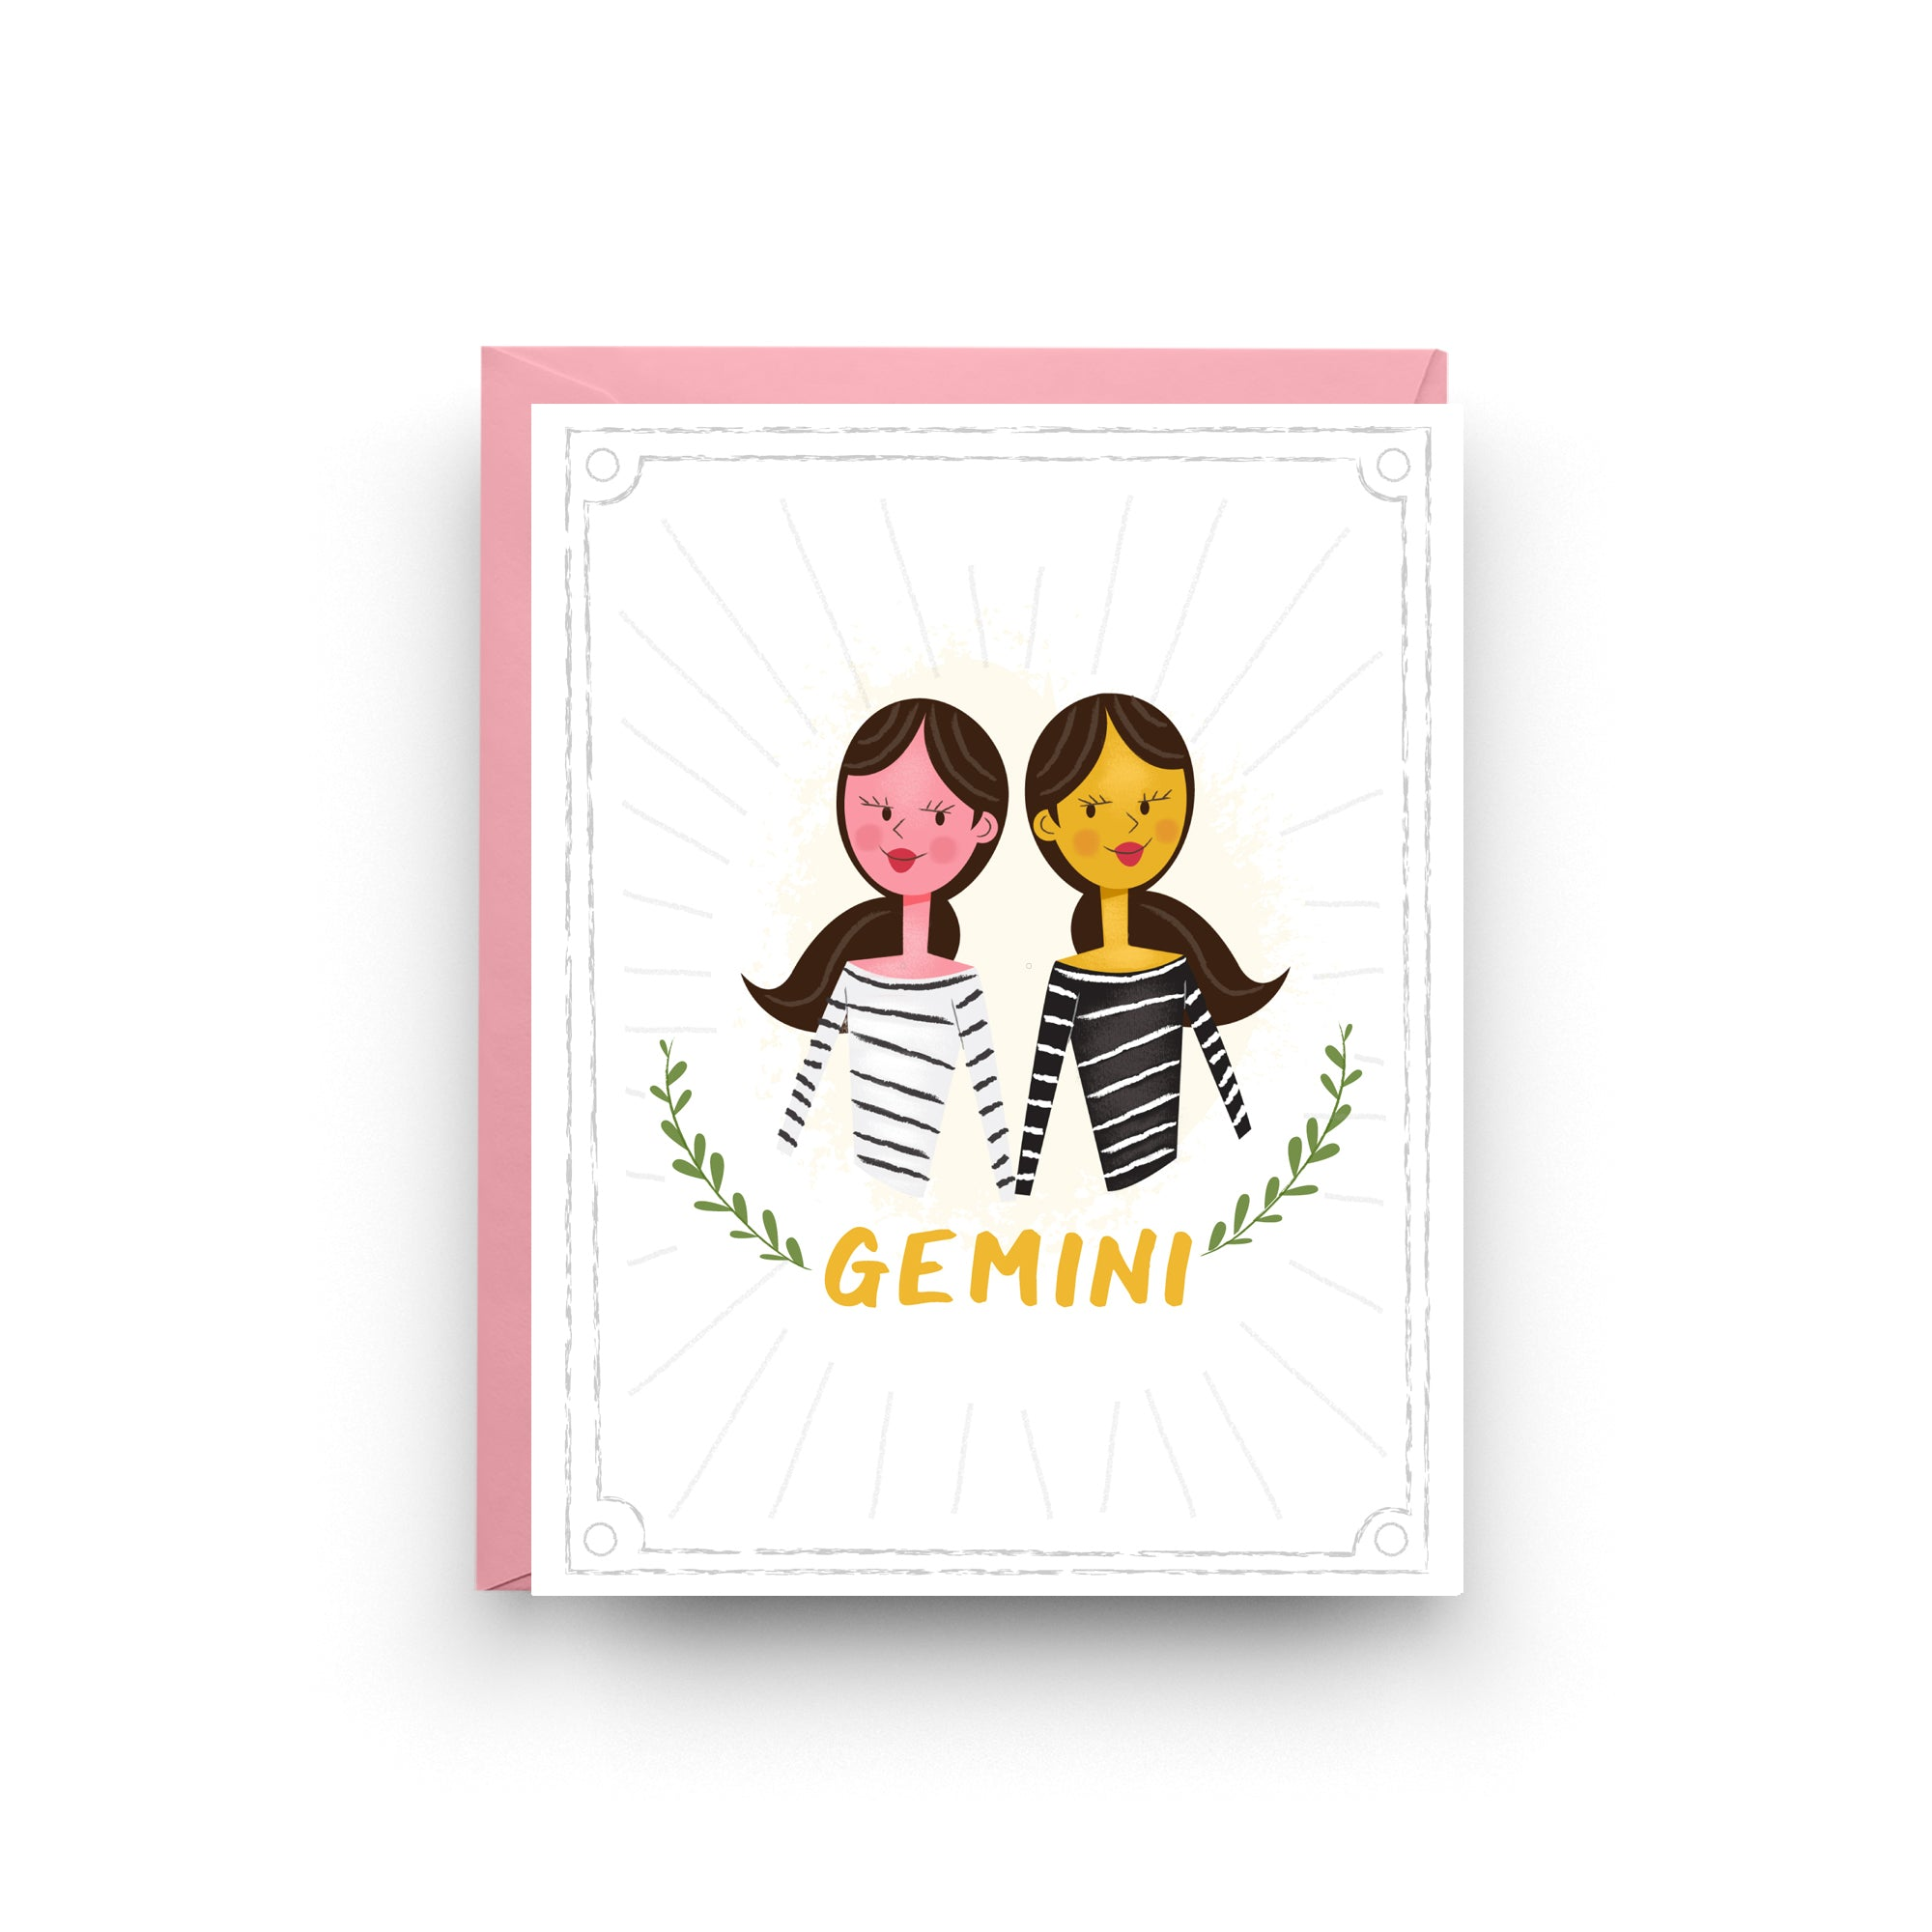 Gemini - Zodiac Birthday Card